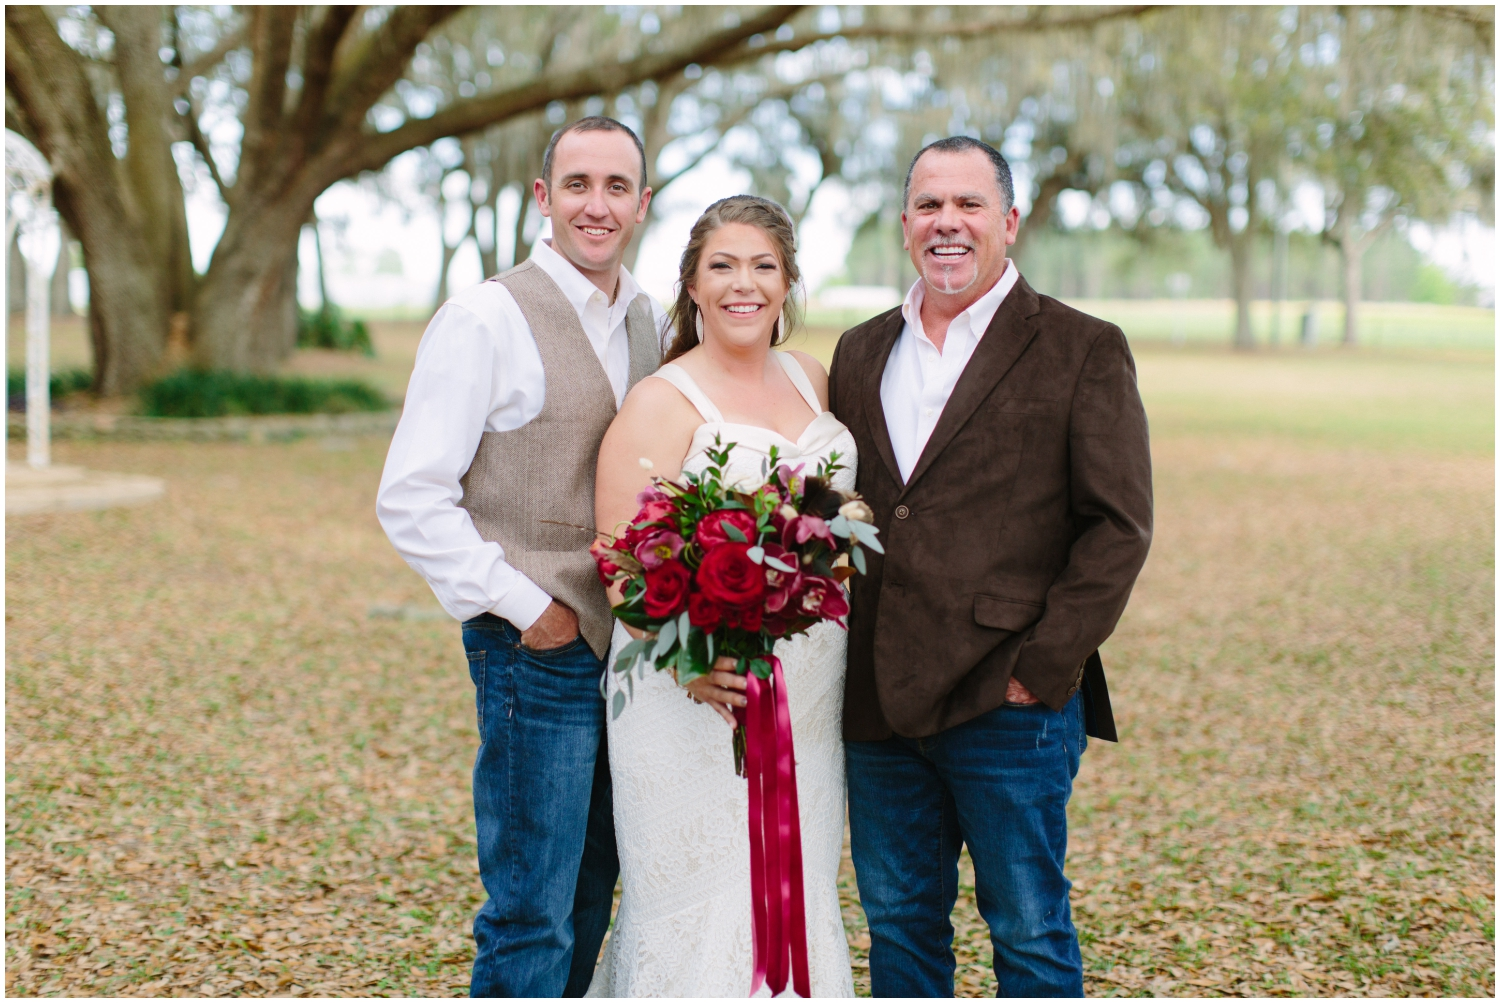 Bride with the groom and father